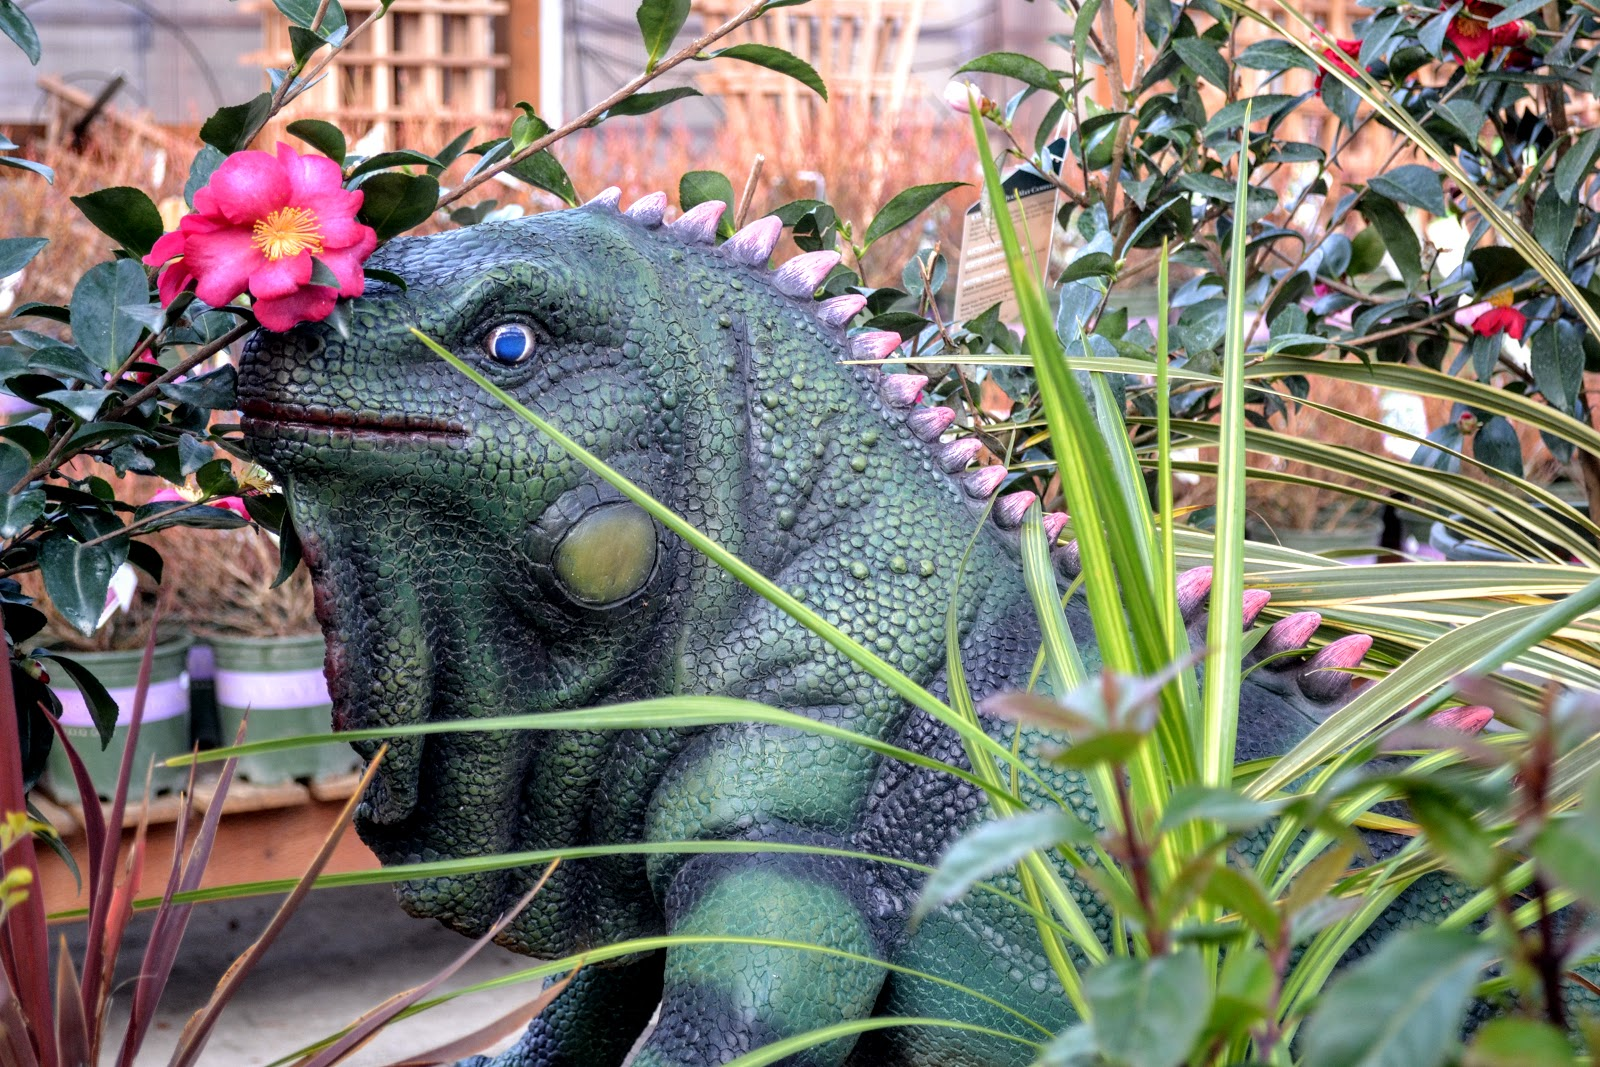 Critters Once Thought To Be Extinct Seem To Be Thriving At Bark And Garden  In Olympia.